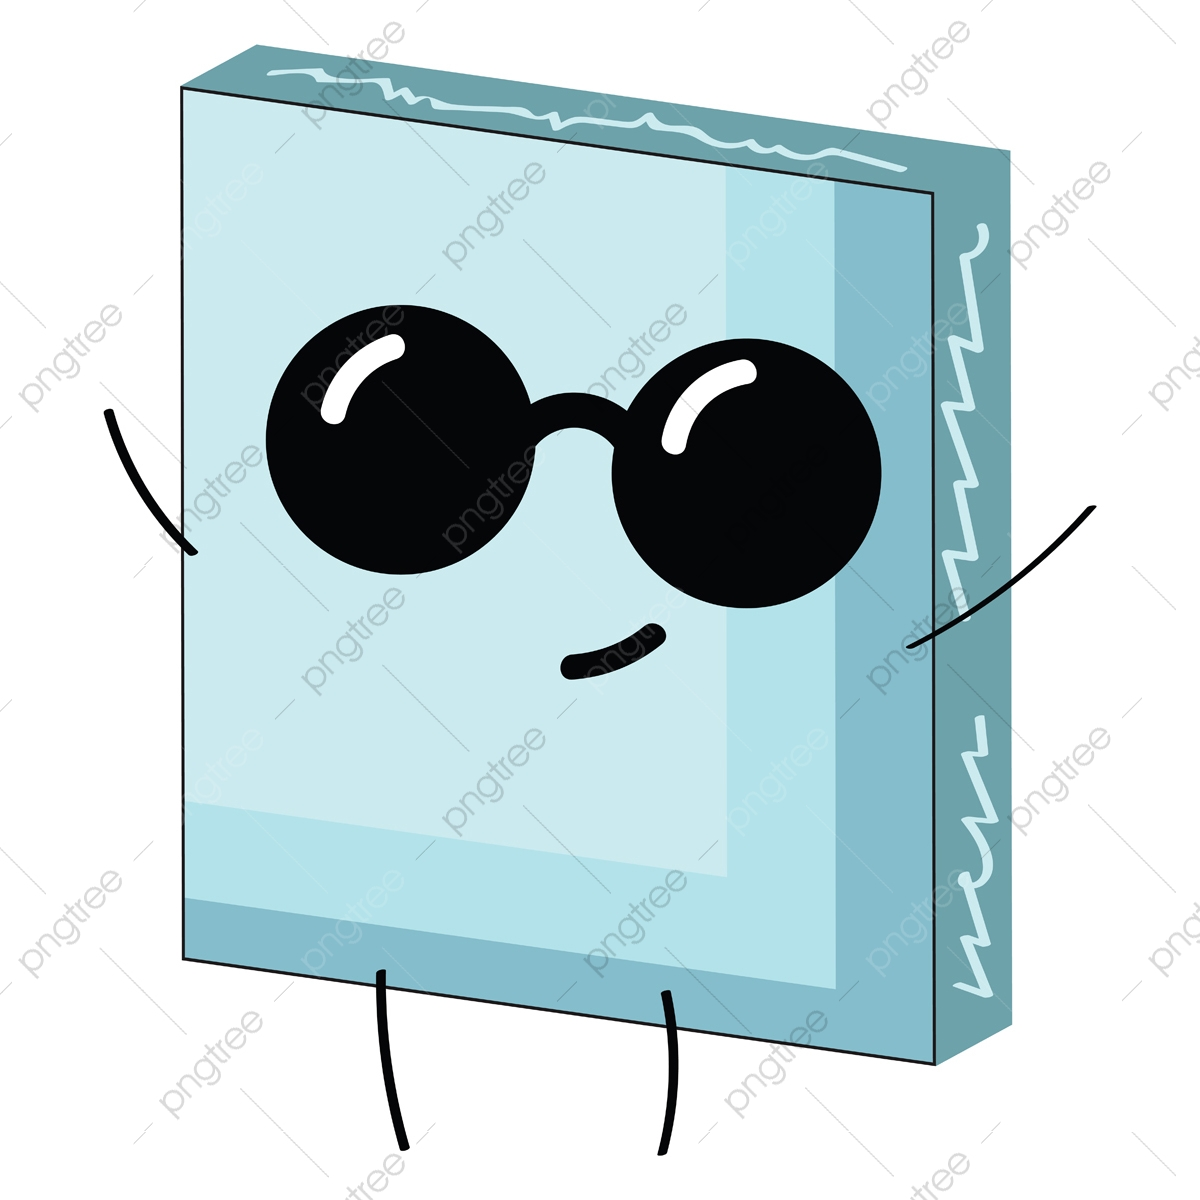 ice vector png free ice cream ice cube ice skating vector images pngtree https pngtree com freepng image of cool ice vector or color illustration 5274391 html